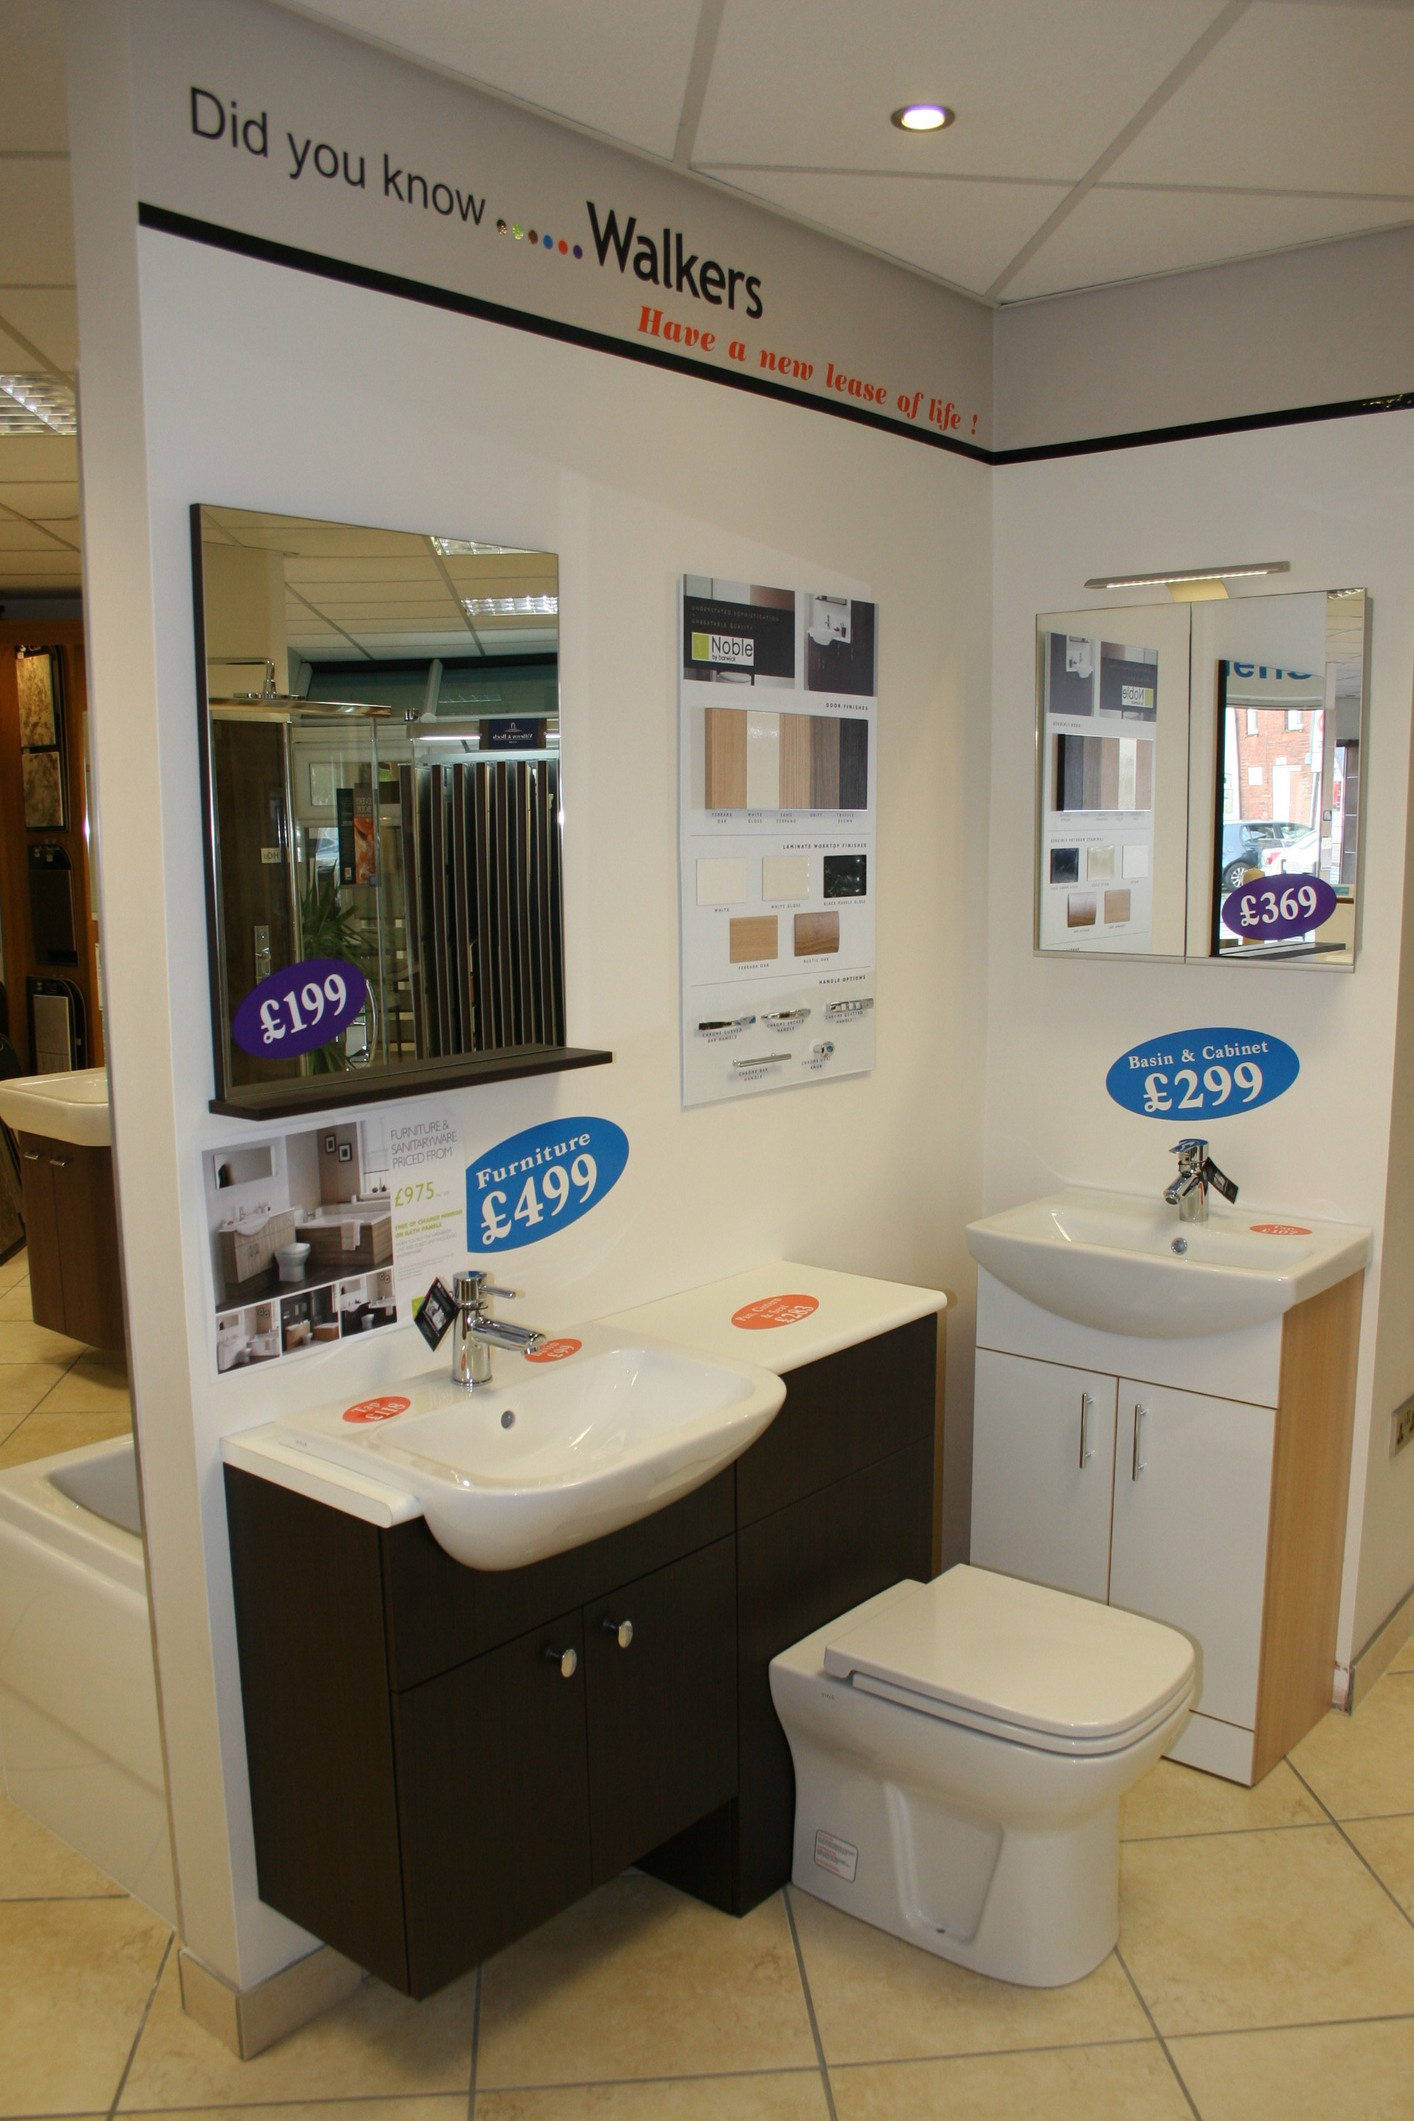 Visit our showroom in Scunthorpe, Lincolnshire - Walkers at Home